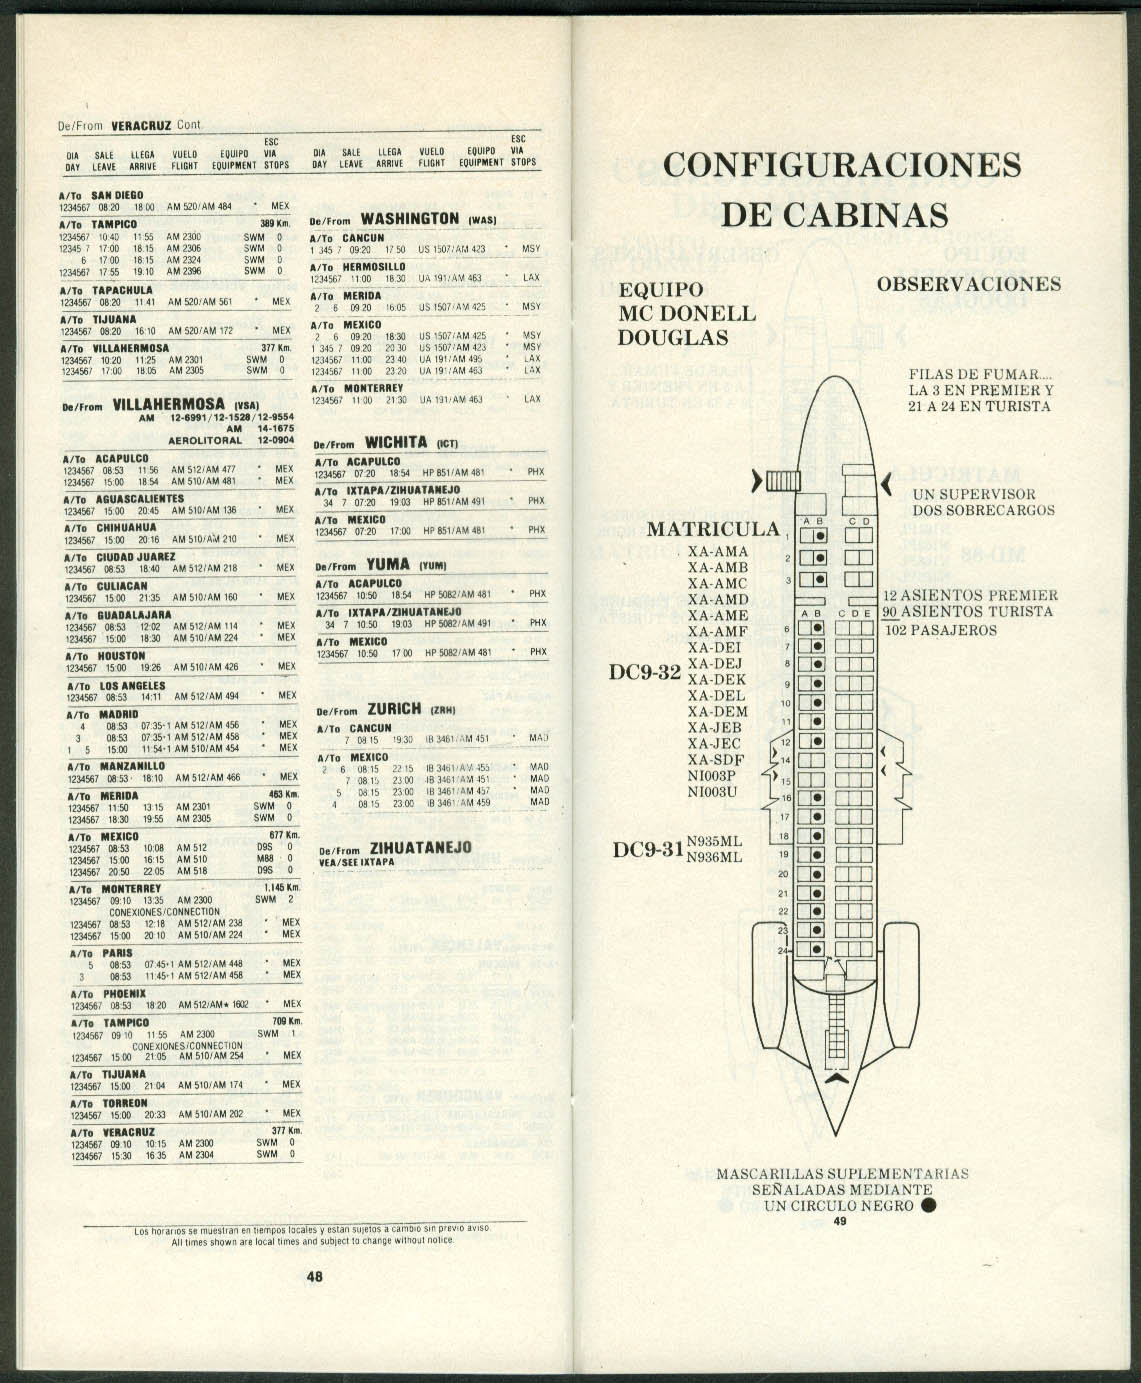 Aeromexico Airline Timetable 10/25 1992 with cabin seating plans